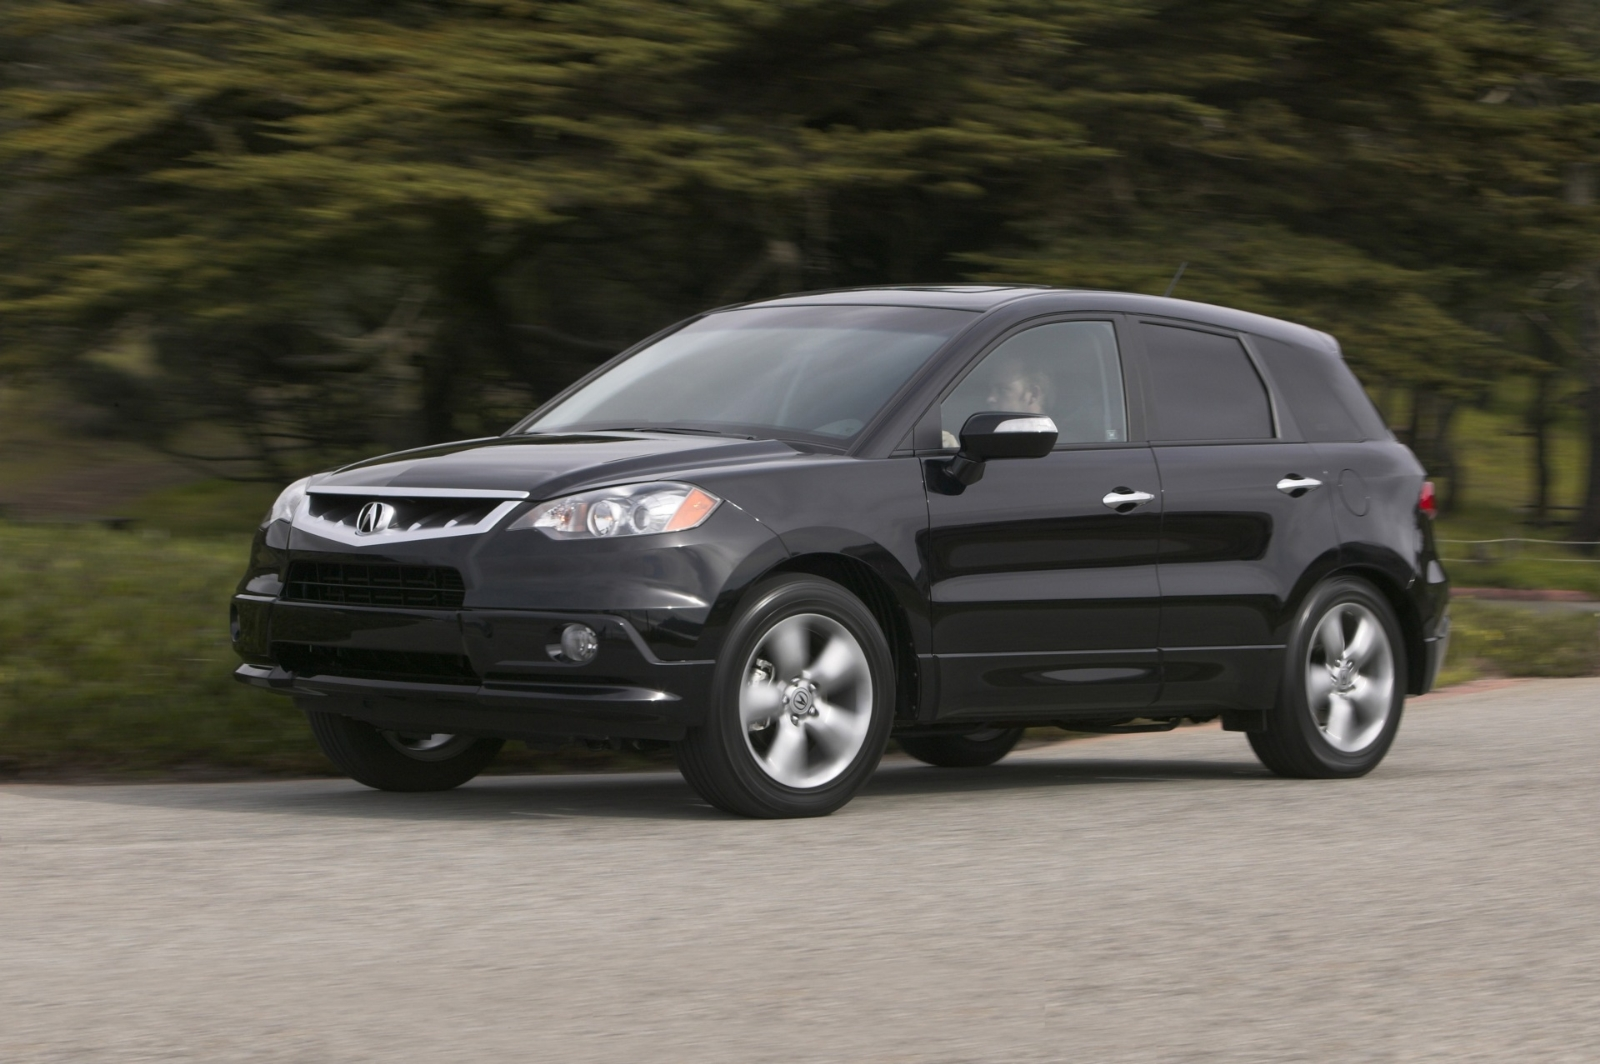 Pictures of acura rdx 2008 #3